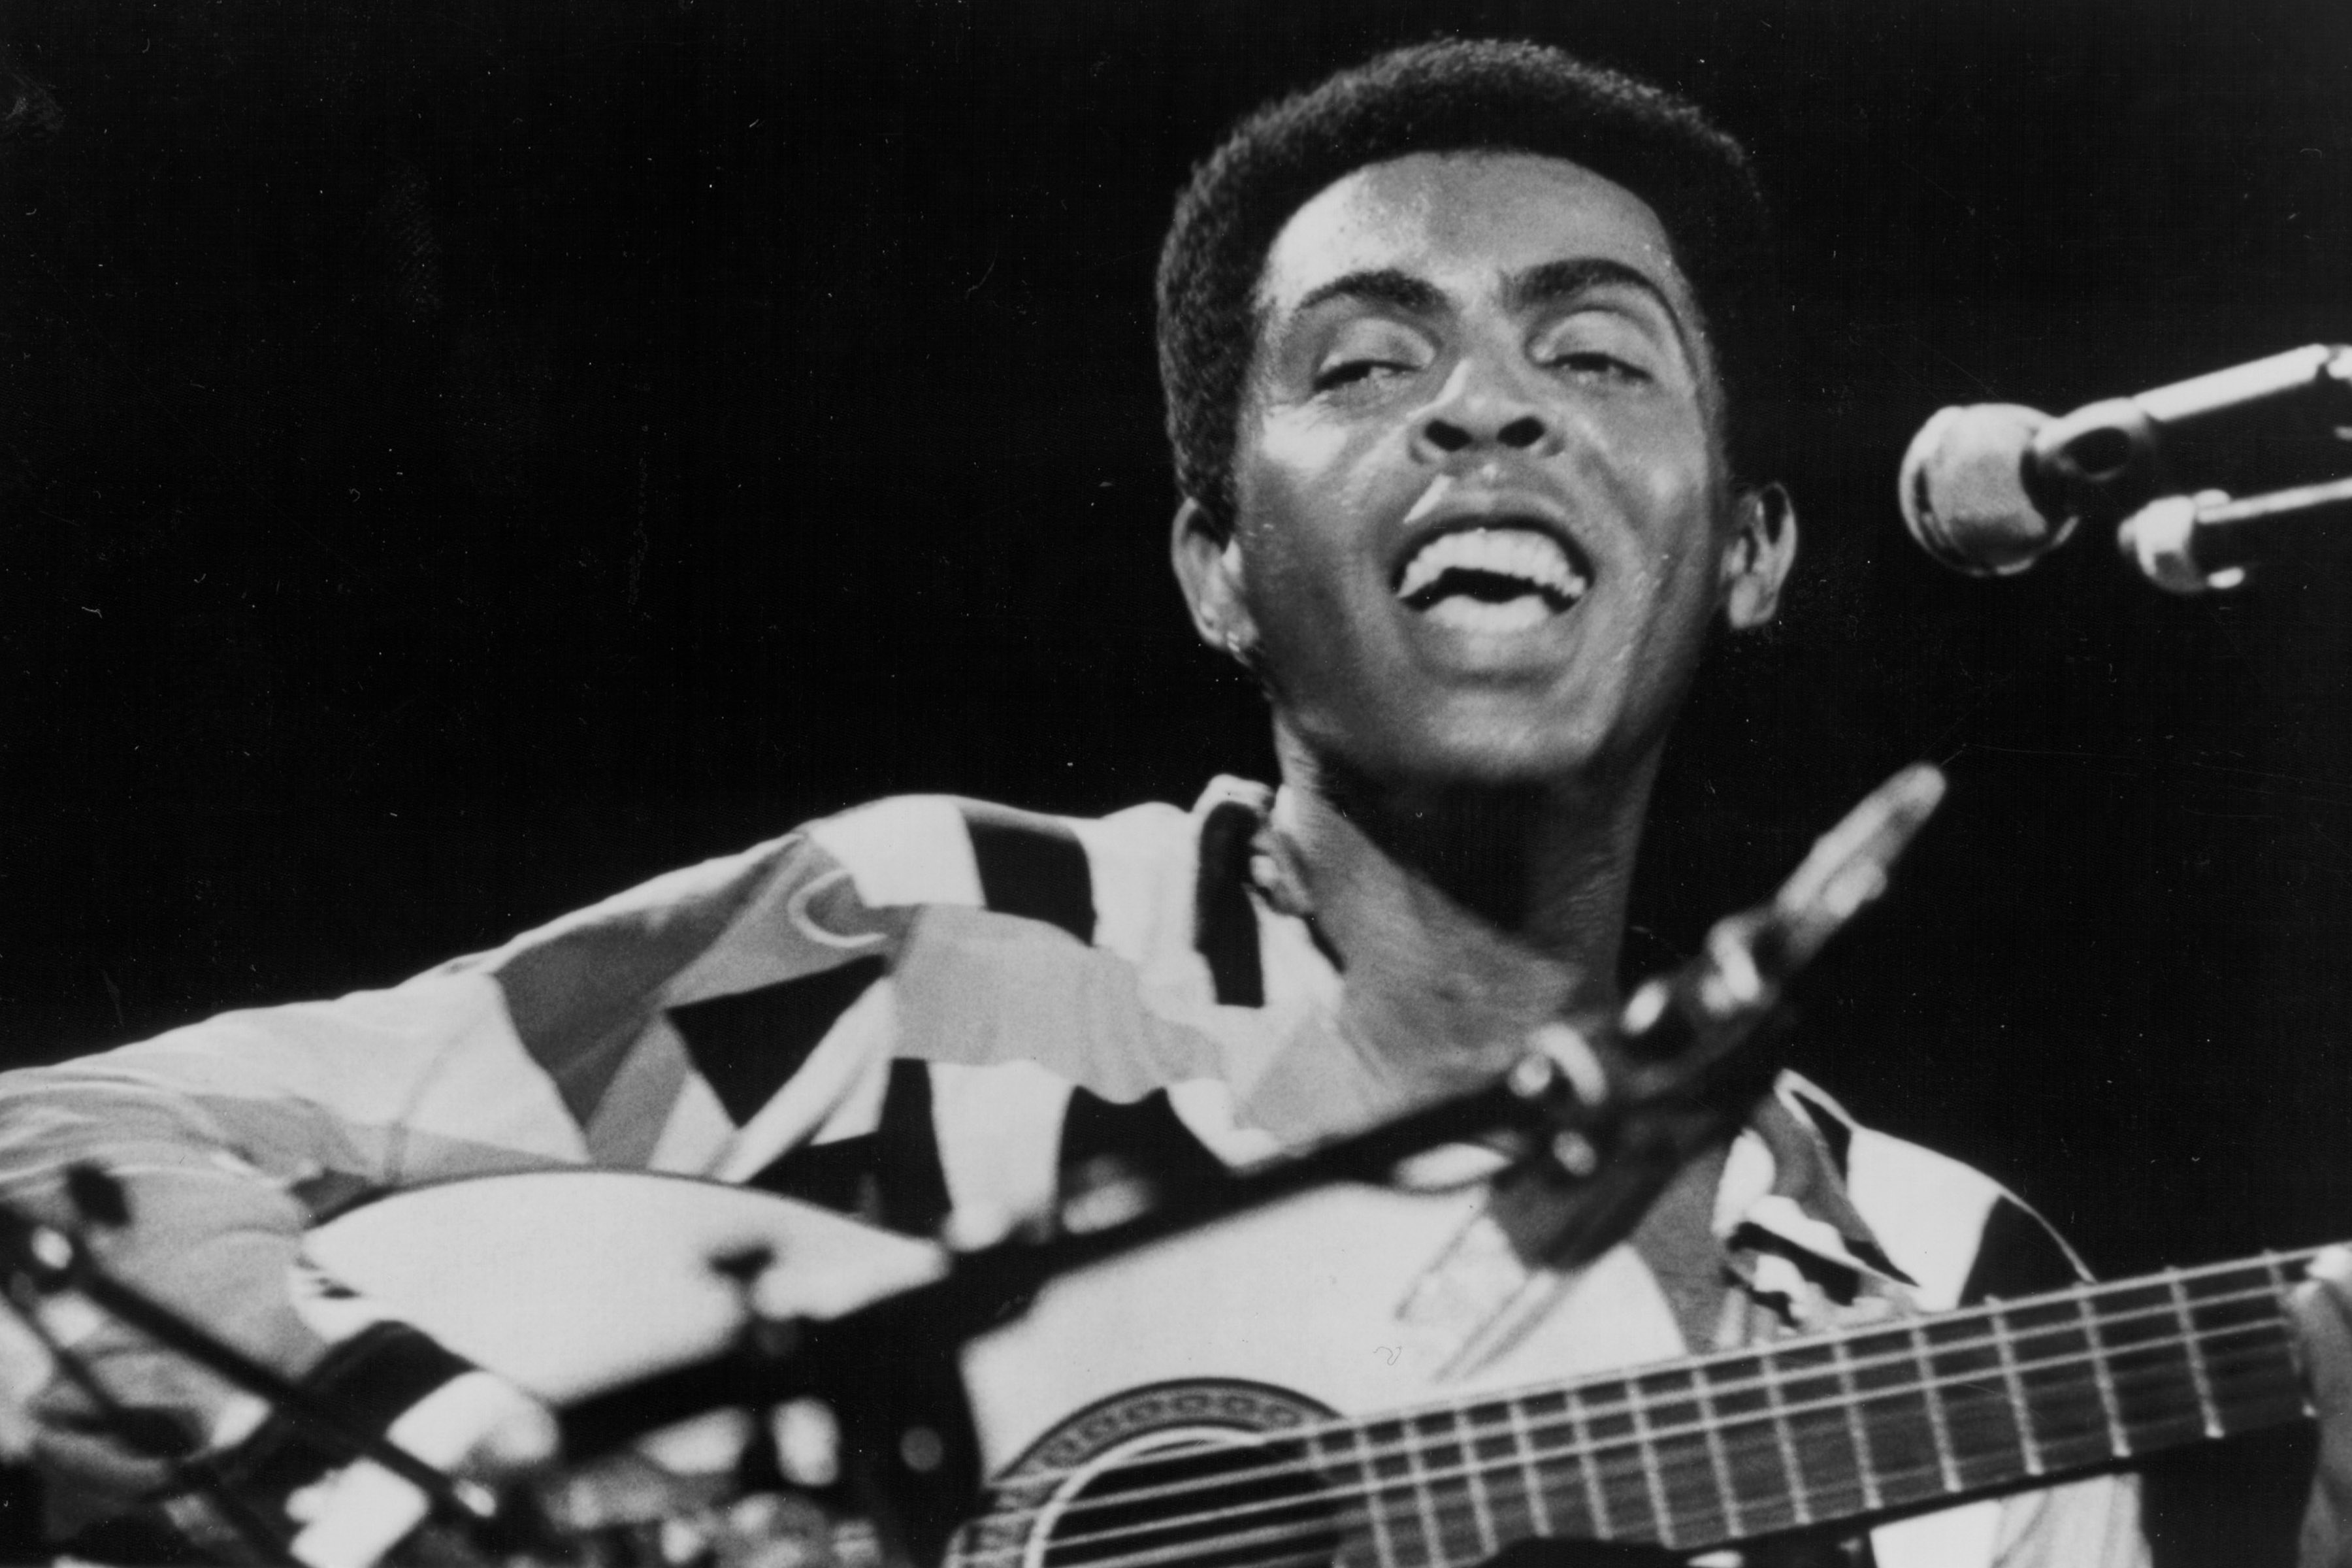 Circa 1970: Gilberto Gil was on the frontline of the tropicalismo movement in Brazil. (Photograph by Michael Ochs Archives/Getty Images)